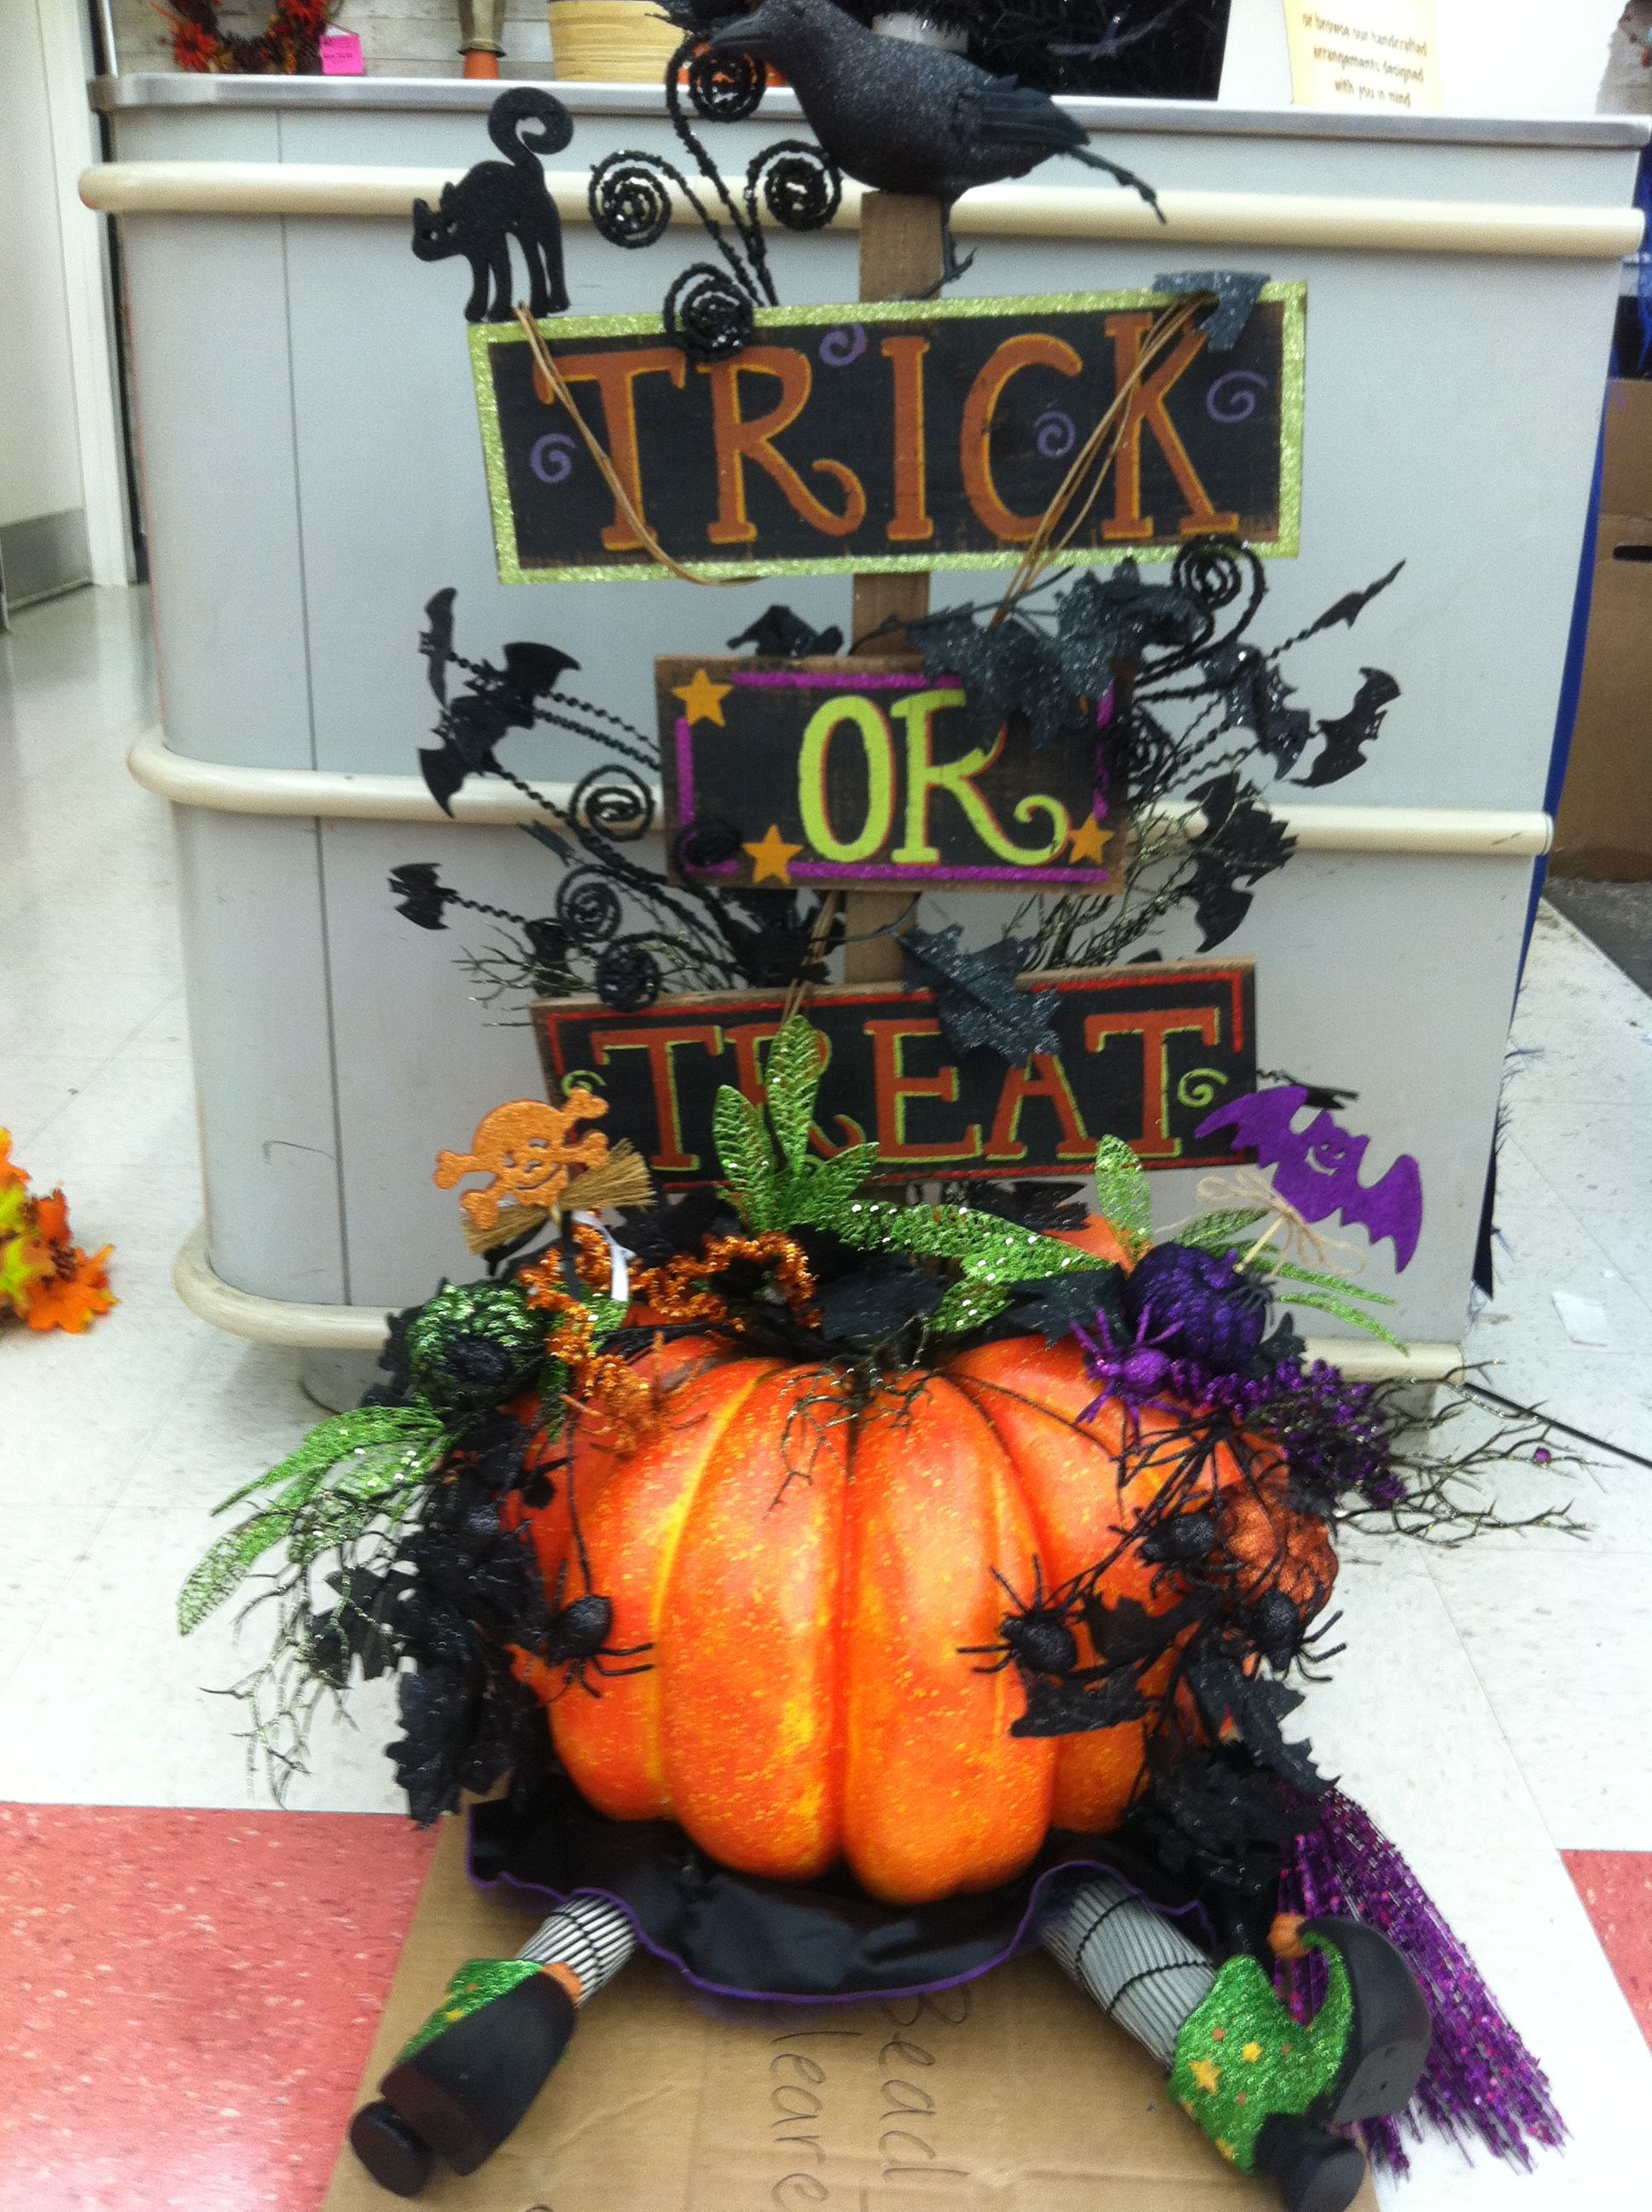 Talented Michael\u0027s Designers - Halloween Halloween Pinterest - michaels halloween decorations